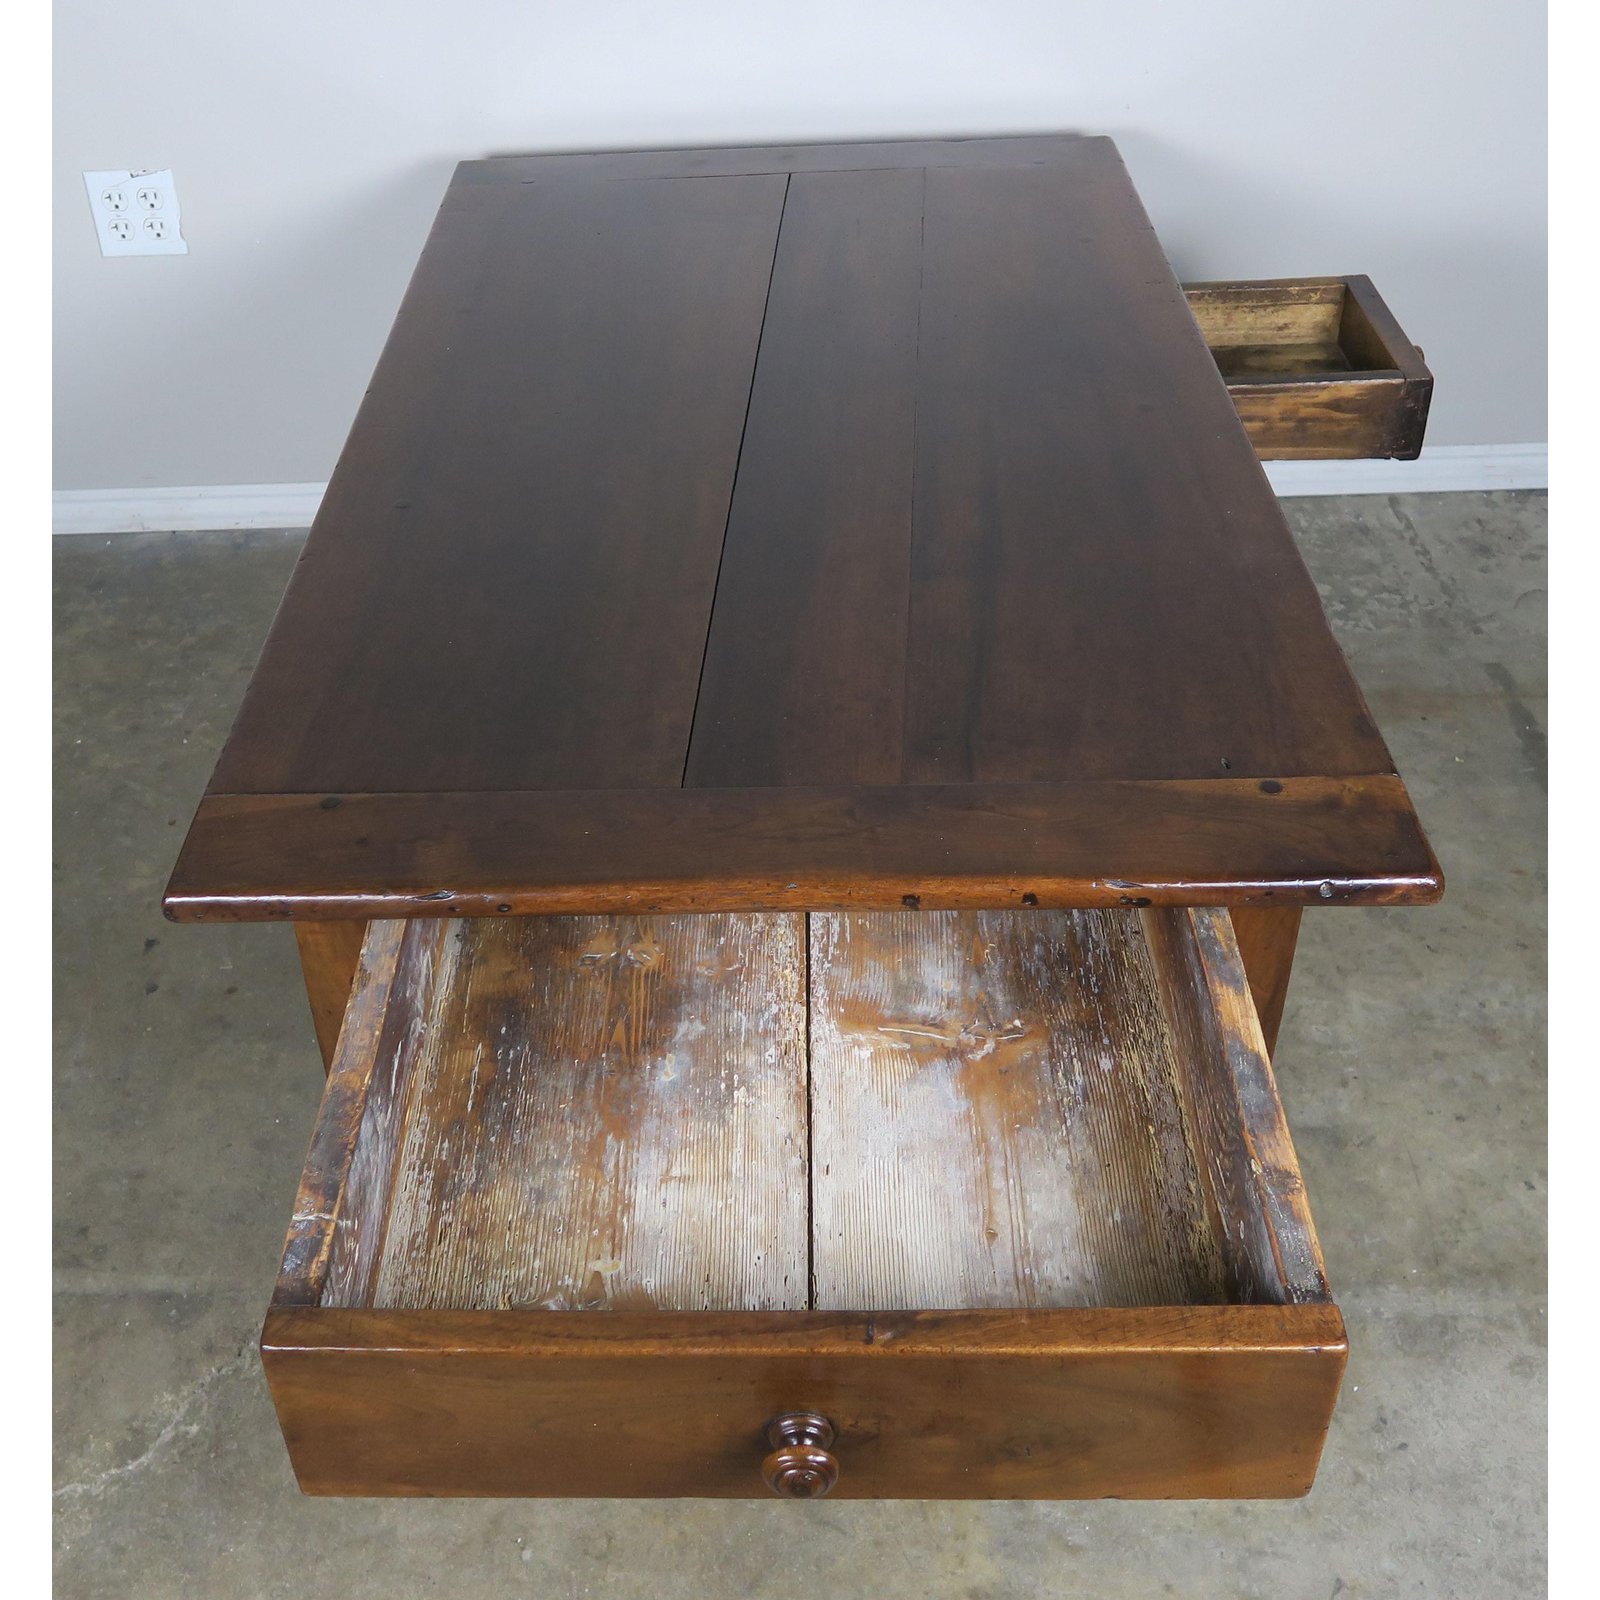 Build Coffee Table With Drawers: 19th Century English Walnut Coffee Table With Drawers